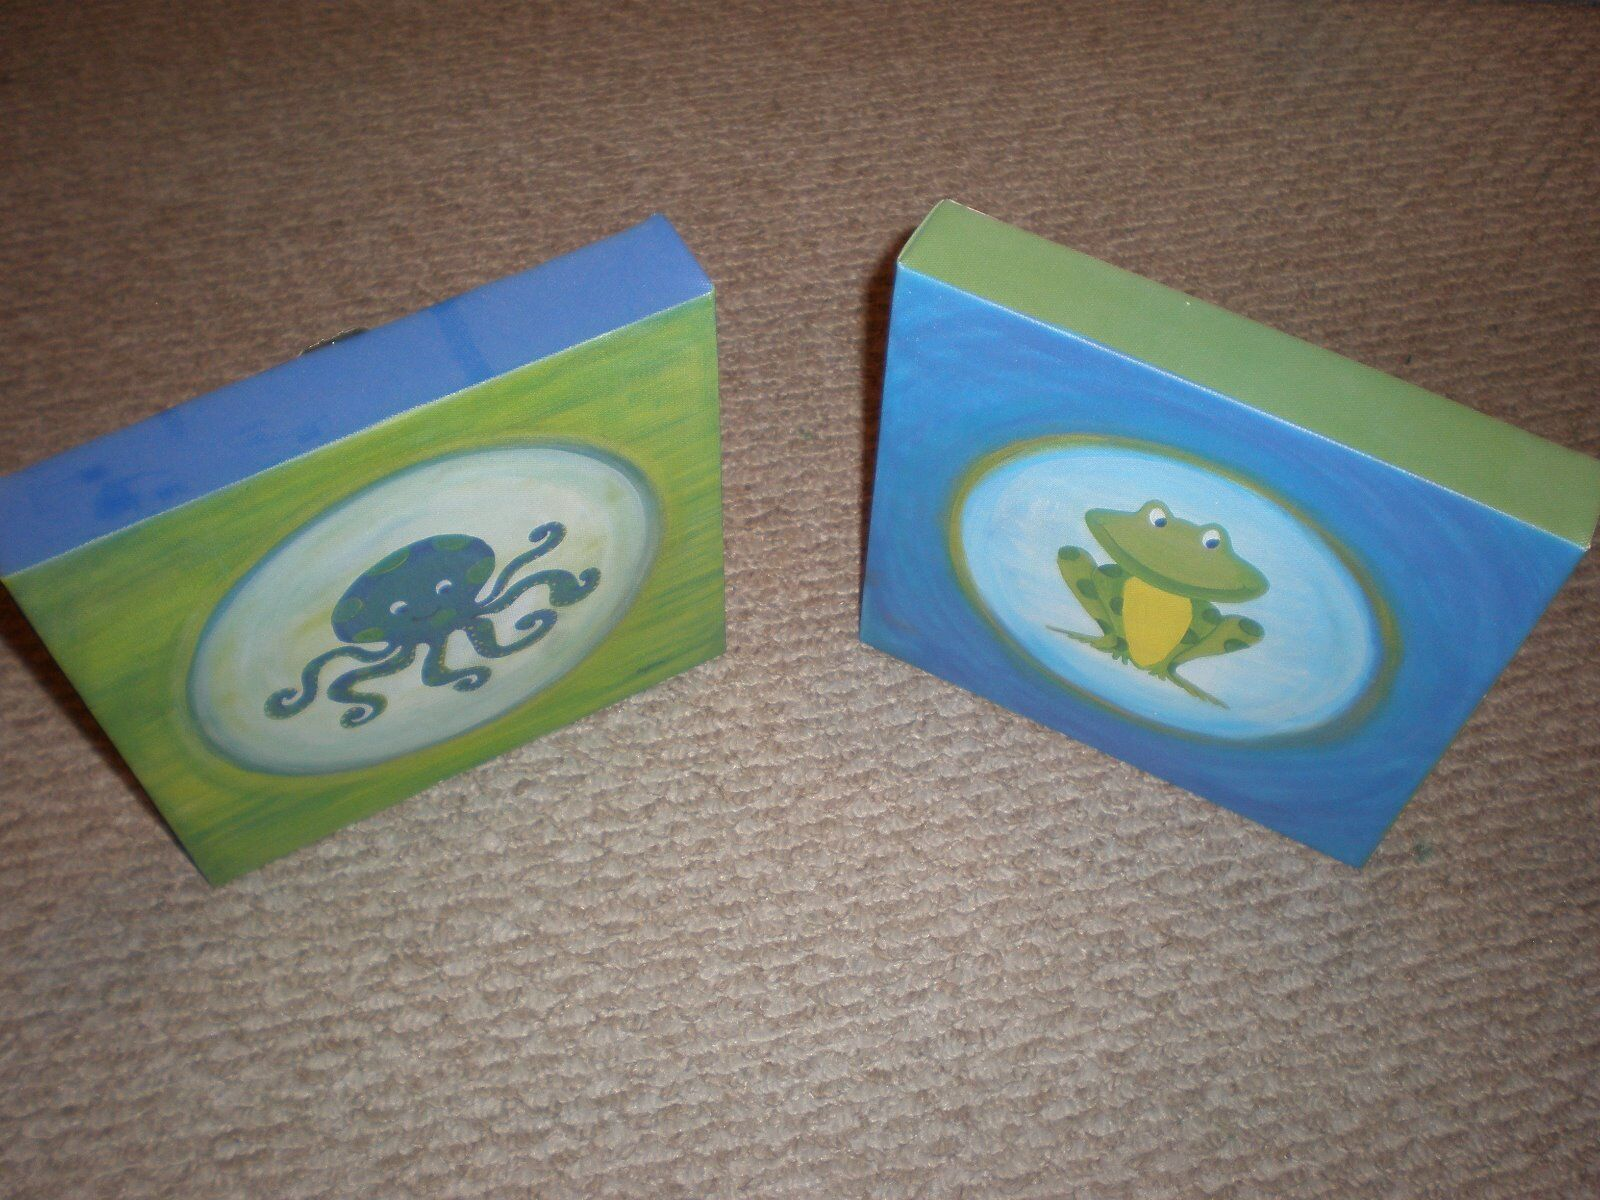 frog and octopus picture frame for kids bedroom set decoration